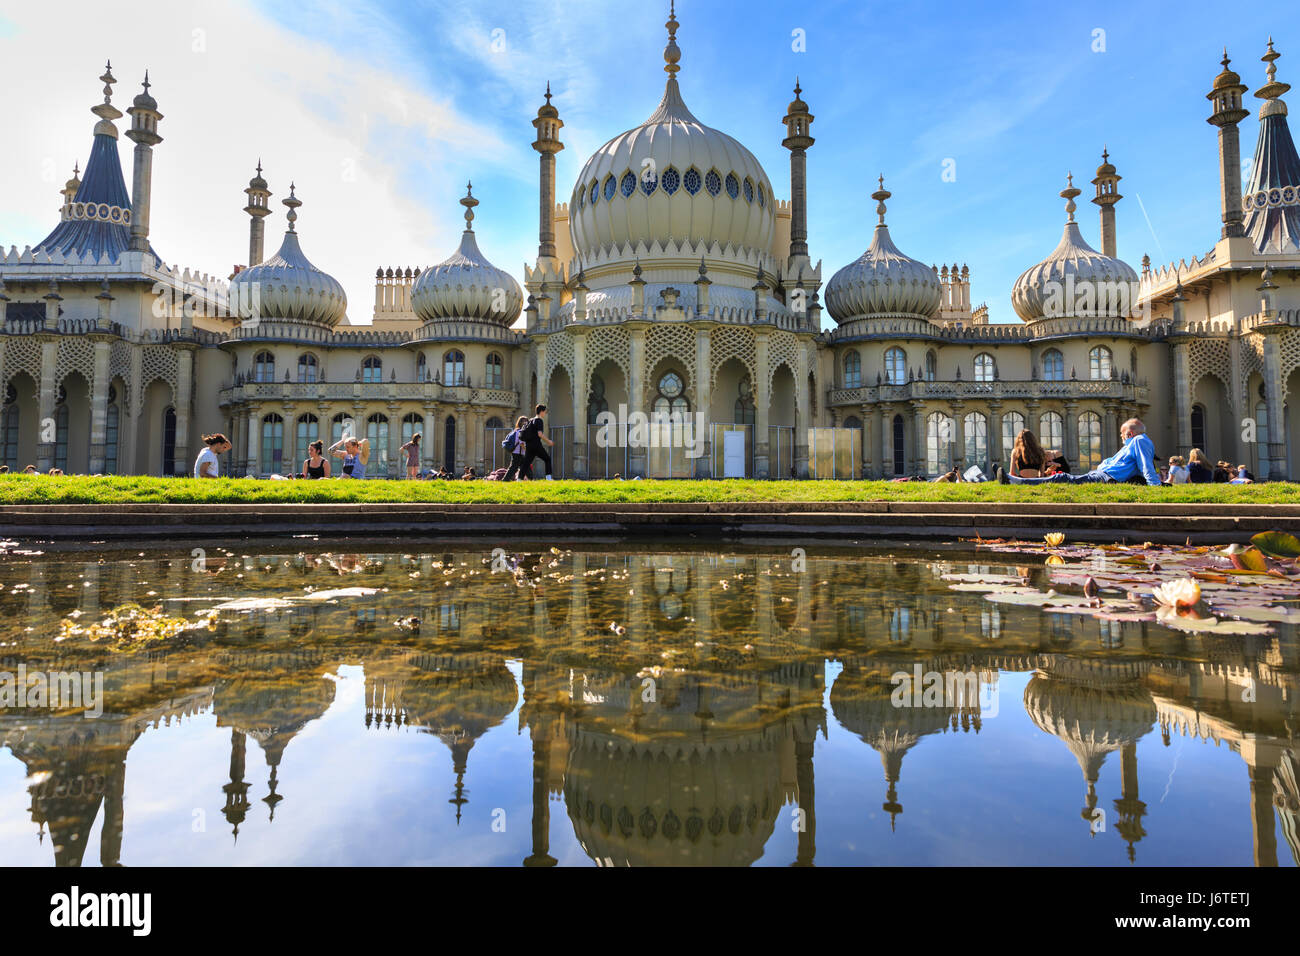 Brighton, UK, 21st May 2017. People enjoy a sunny and warm day on the lawns around Brighton's Royal Pavilion - Stock Image